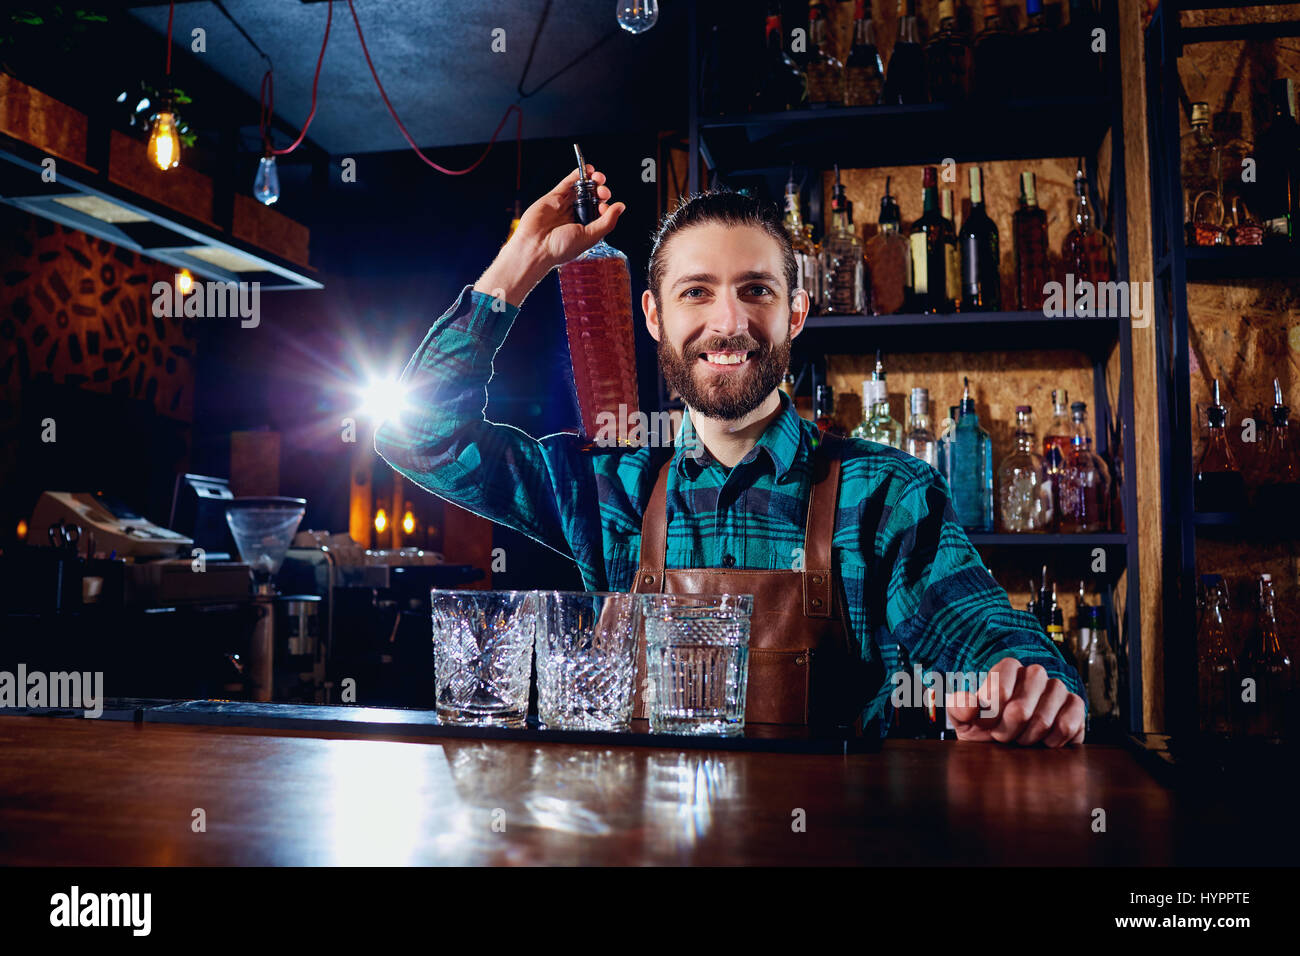 A barman with bottle of alcohol smiles laughing at the bar - Stock Image